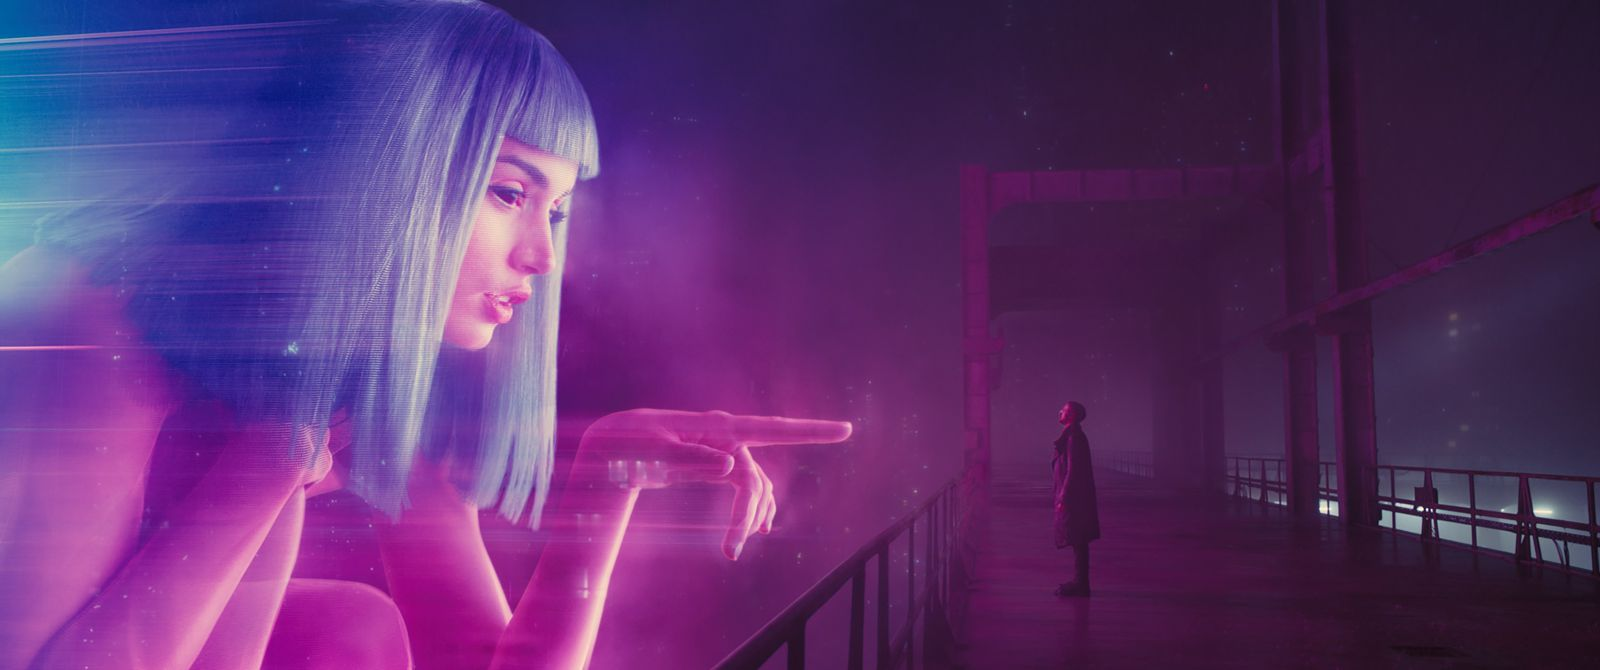 RYAN GOSLING as K in Alcon EntertainmentХs sci fi thriller BLADE RUNNER 2049 in association with Columbia Pictures, domestic distribution by Warner Bros. Pictures and international distribution by Sony Pictures Releasing International.